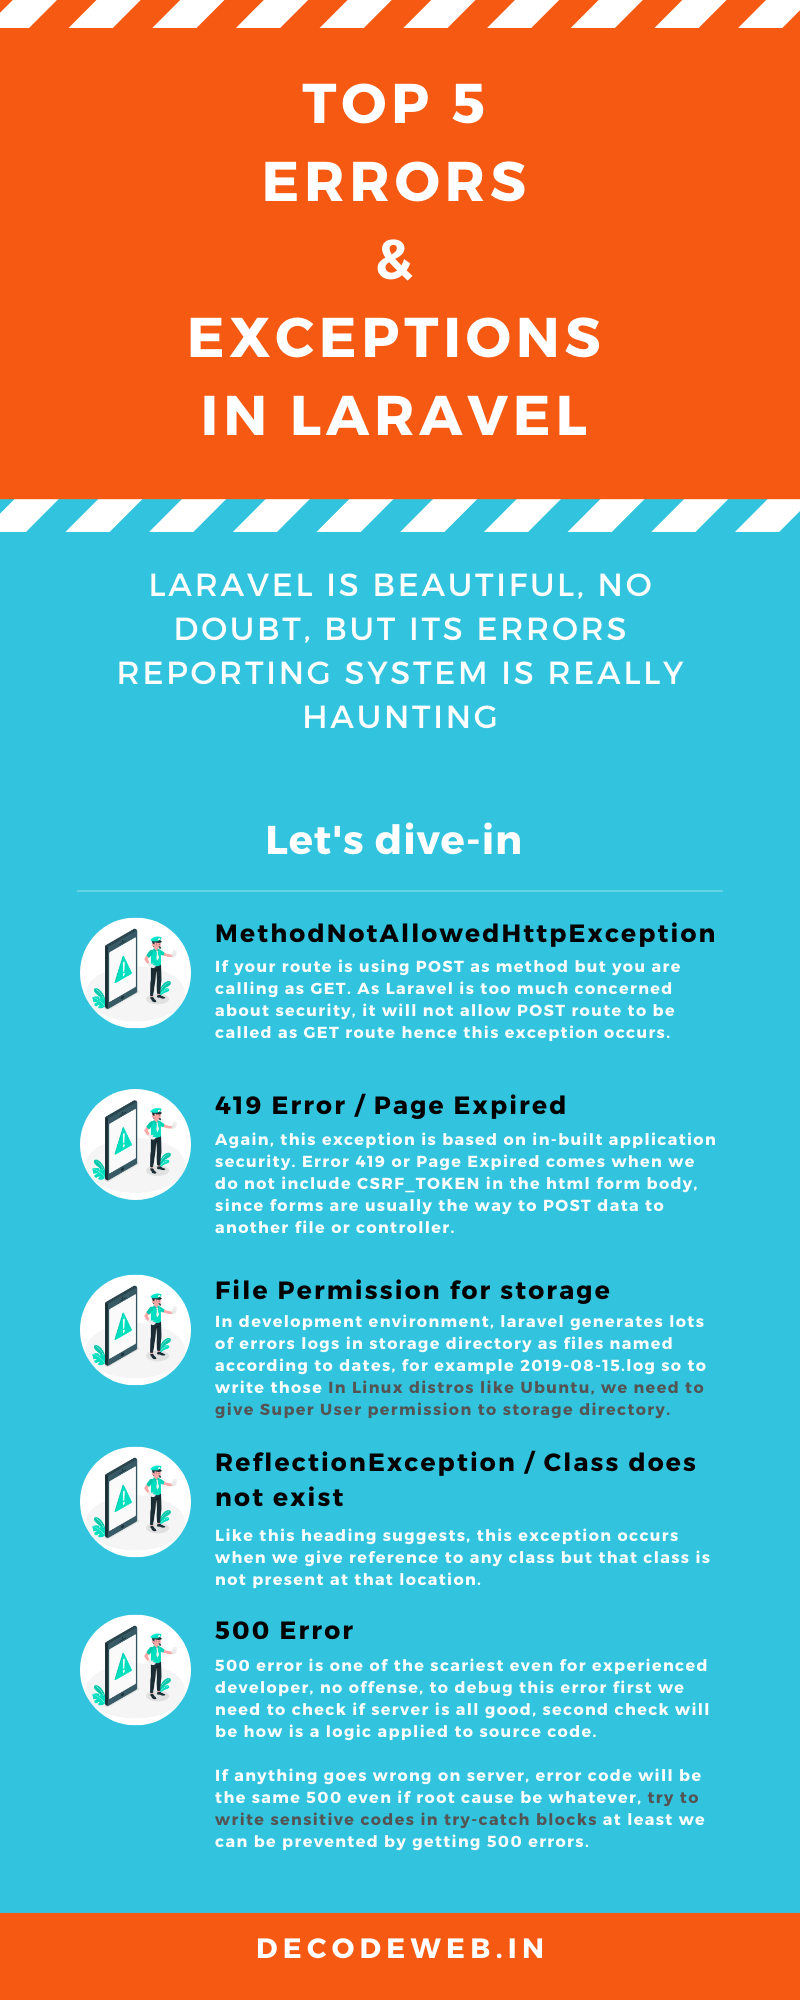 Top 5 errors and exceptions in Laravel